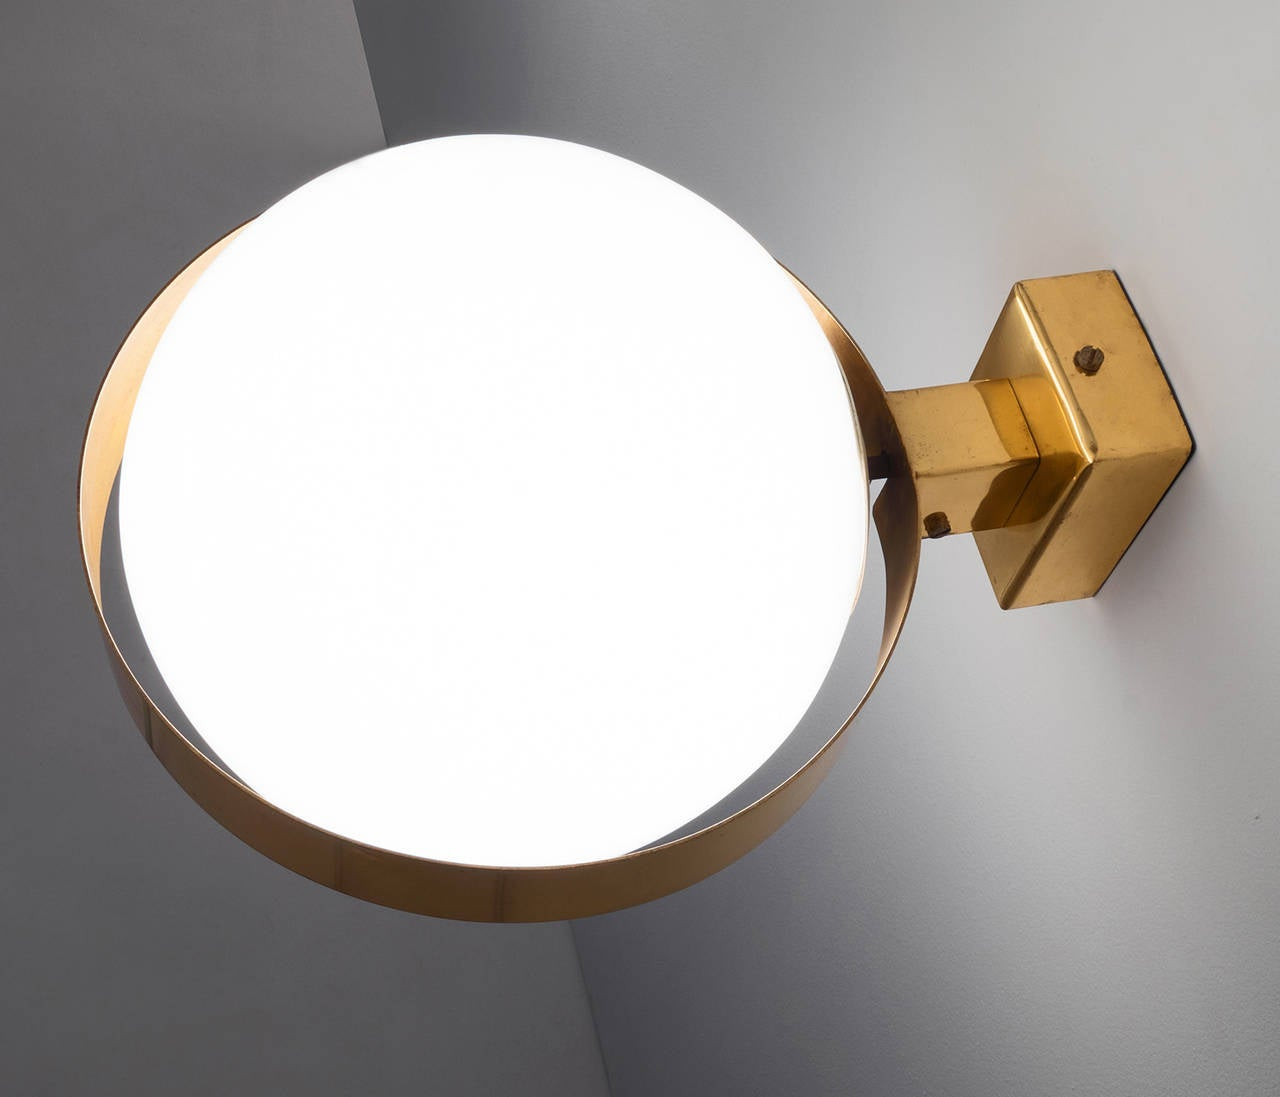 Extra Large Wall Lights in Brass with Floating Globes For Sale at 1stdibs